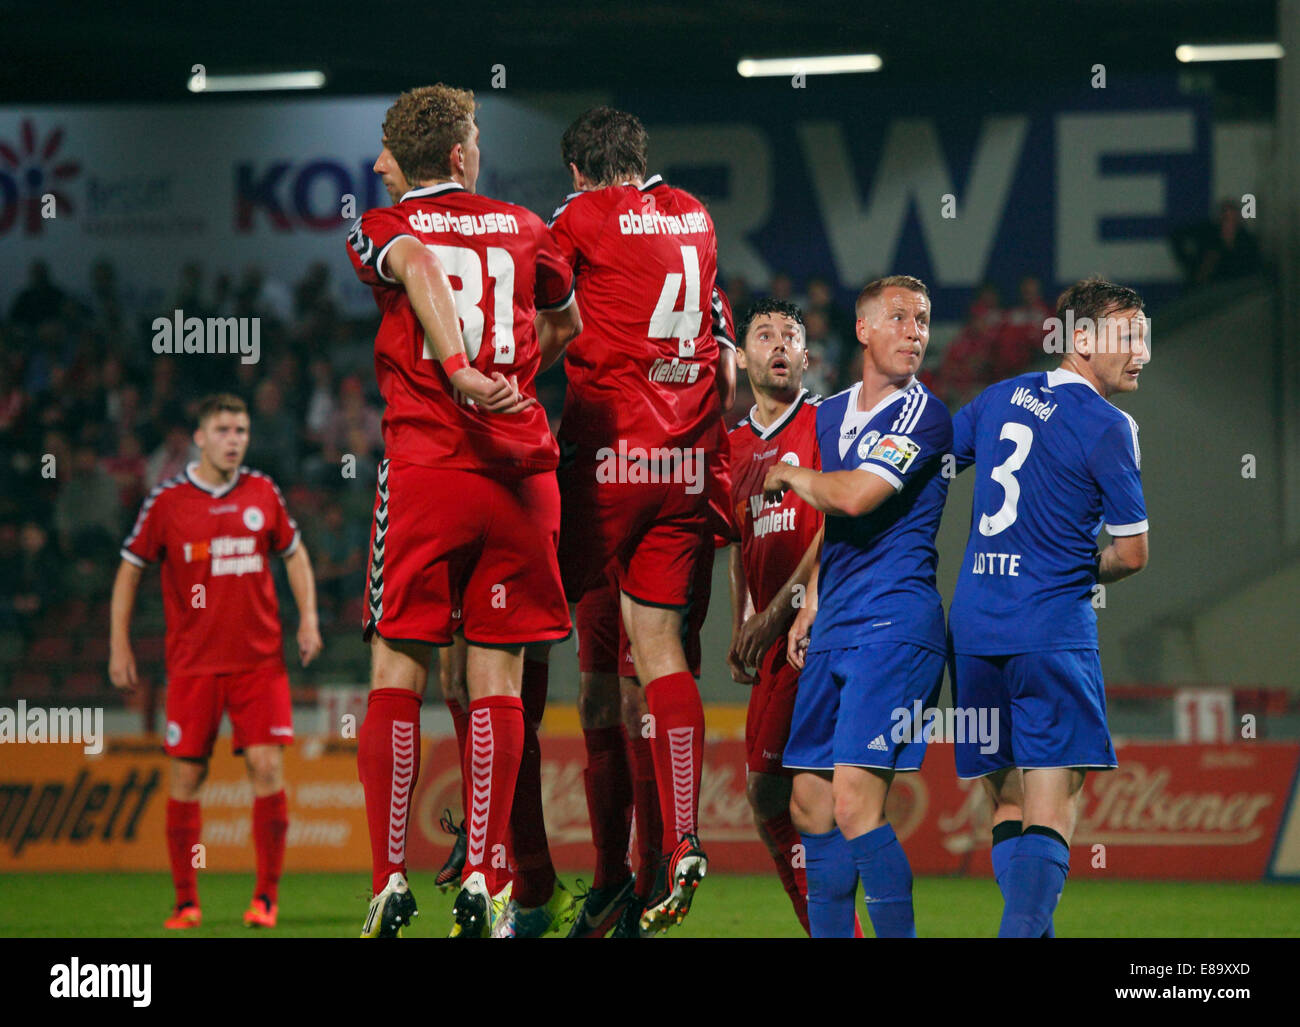 sports, football, Regional League West, 2014/2015, Rot Weiss Oberhausen versus VfL Sportfreunde Lotte 0:1, Stadium - Stock Image